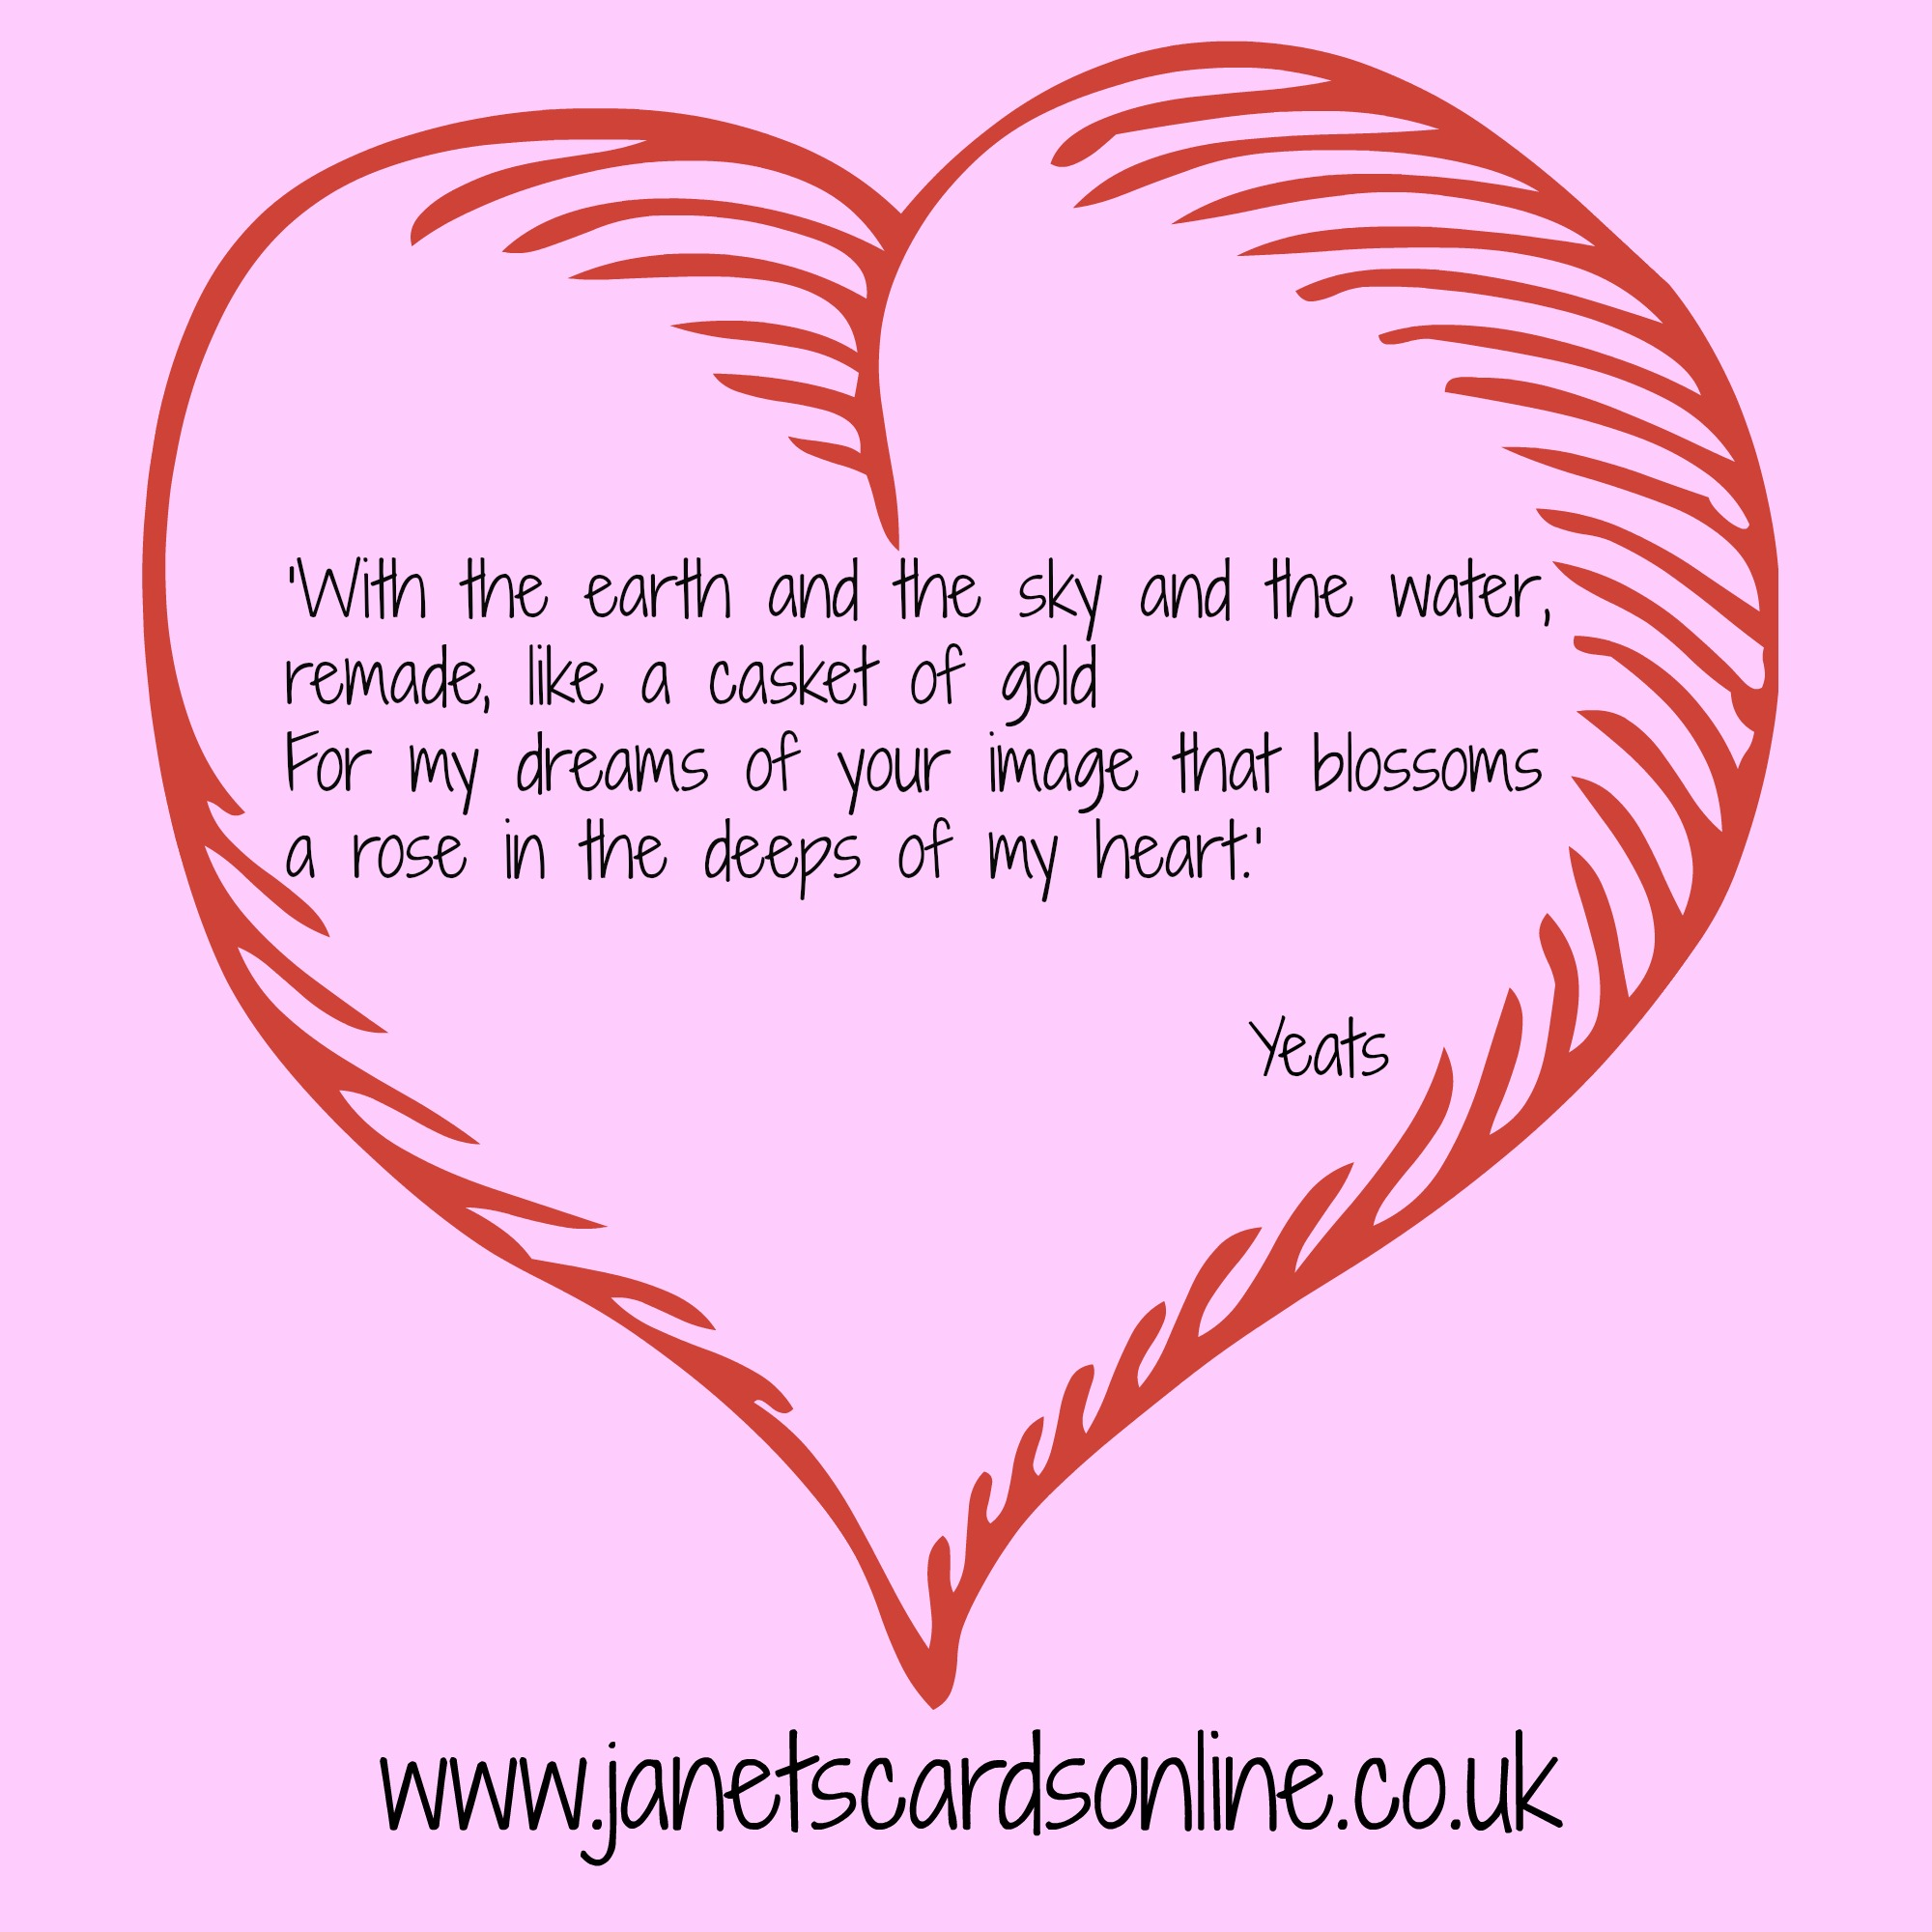 William Yeats love verse quote rose deeps heart Valentines Day